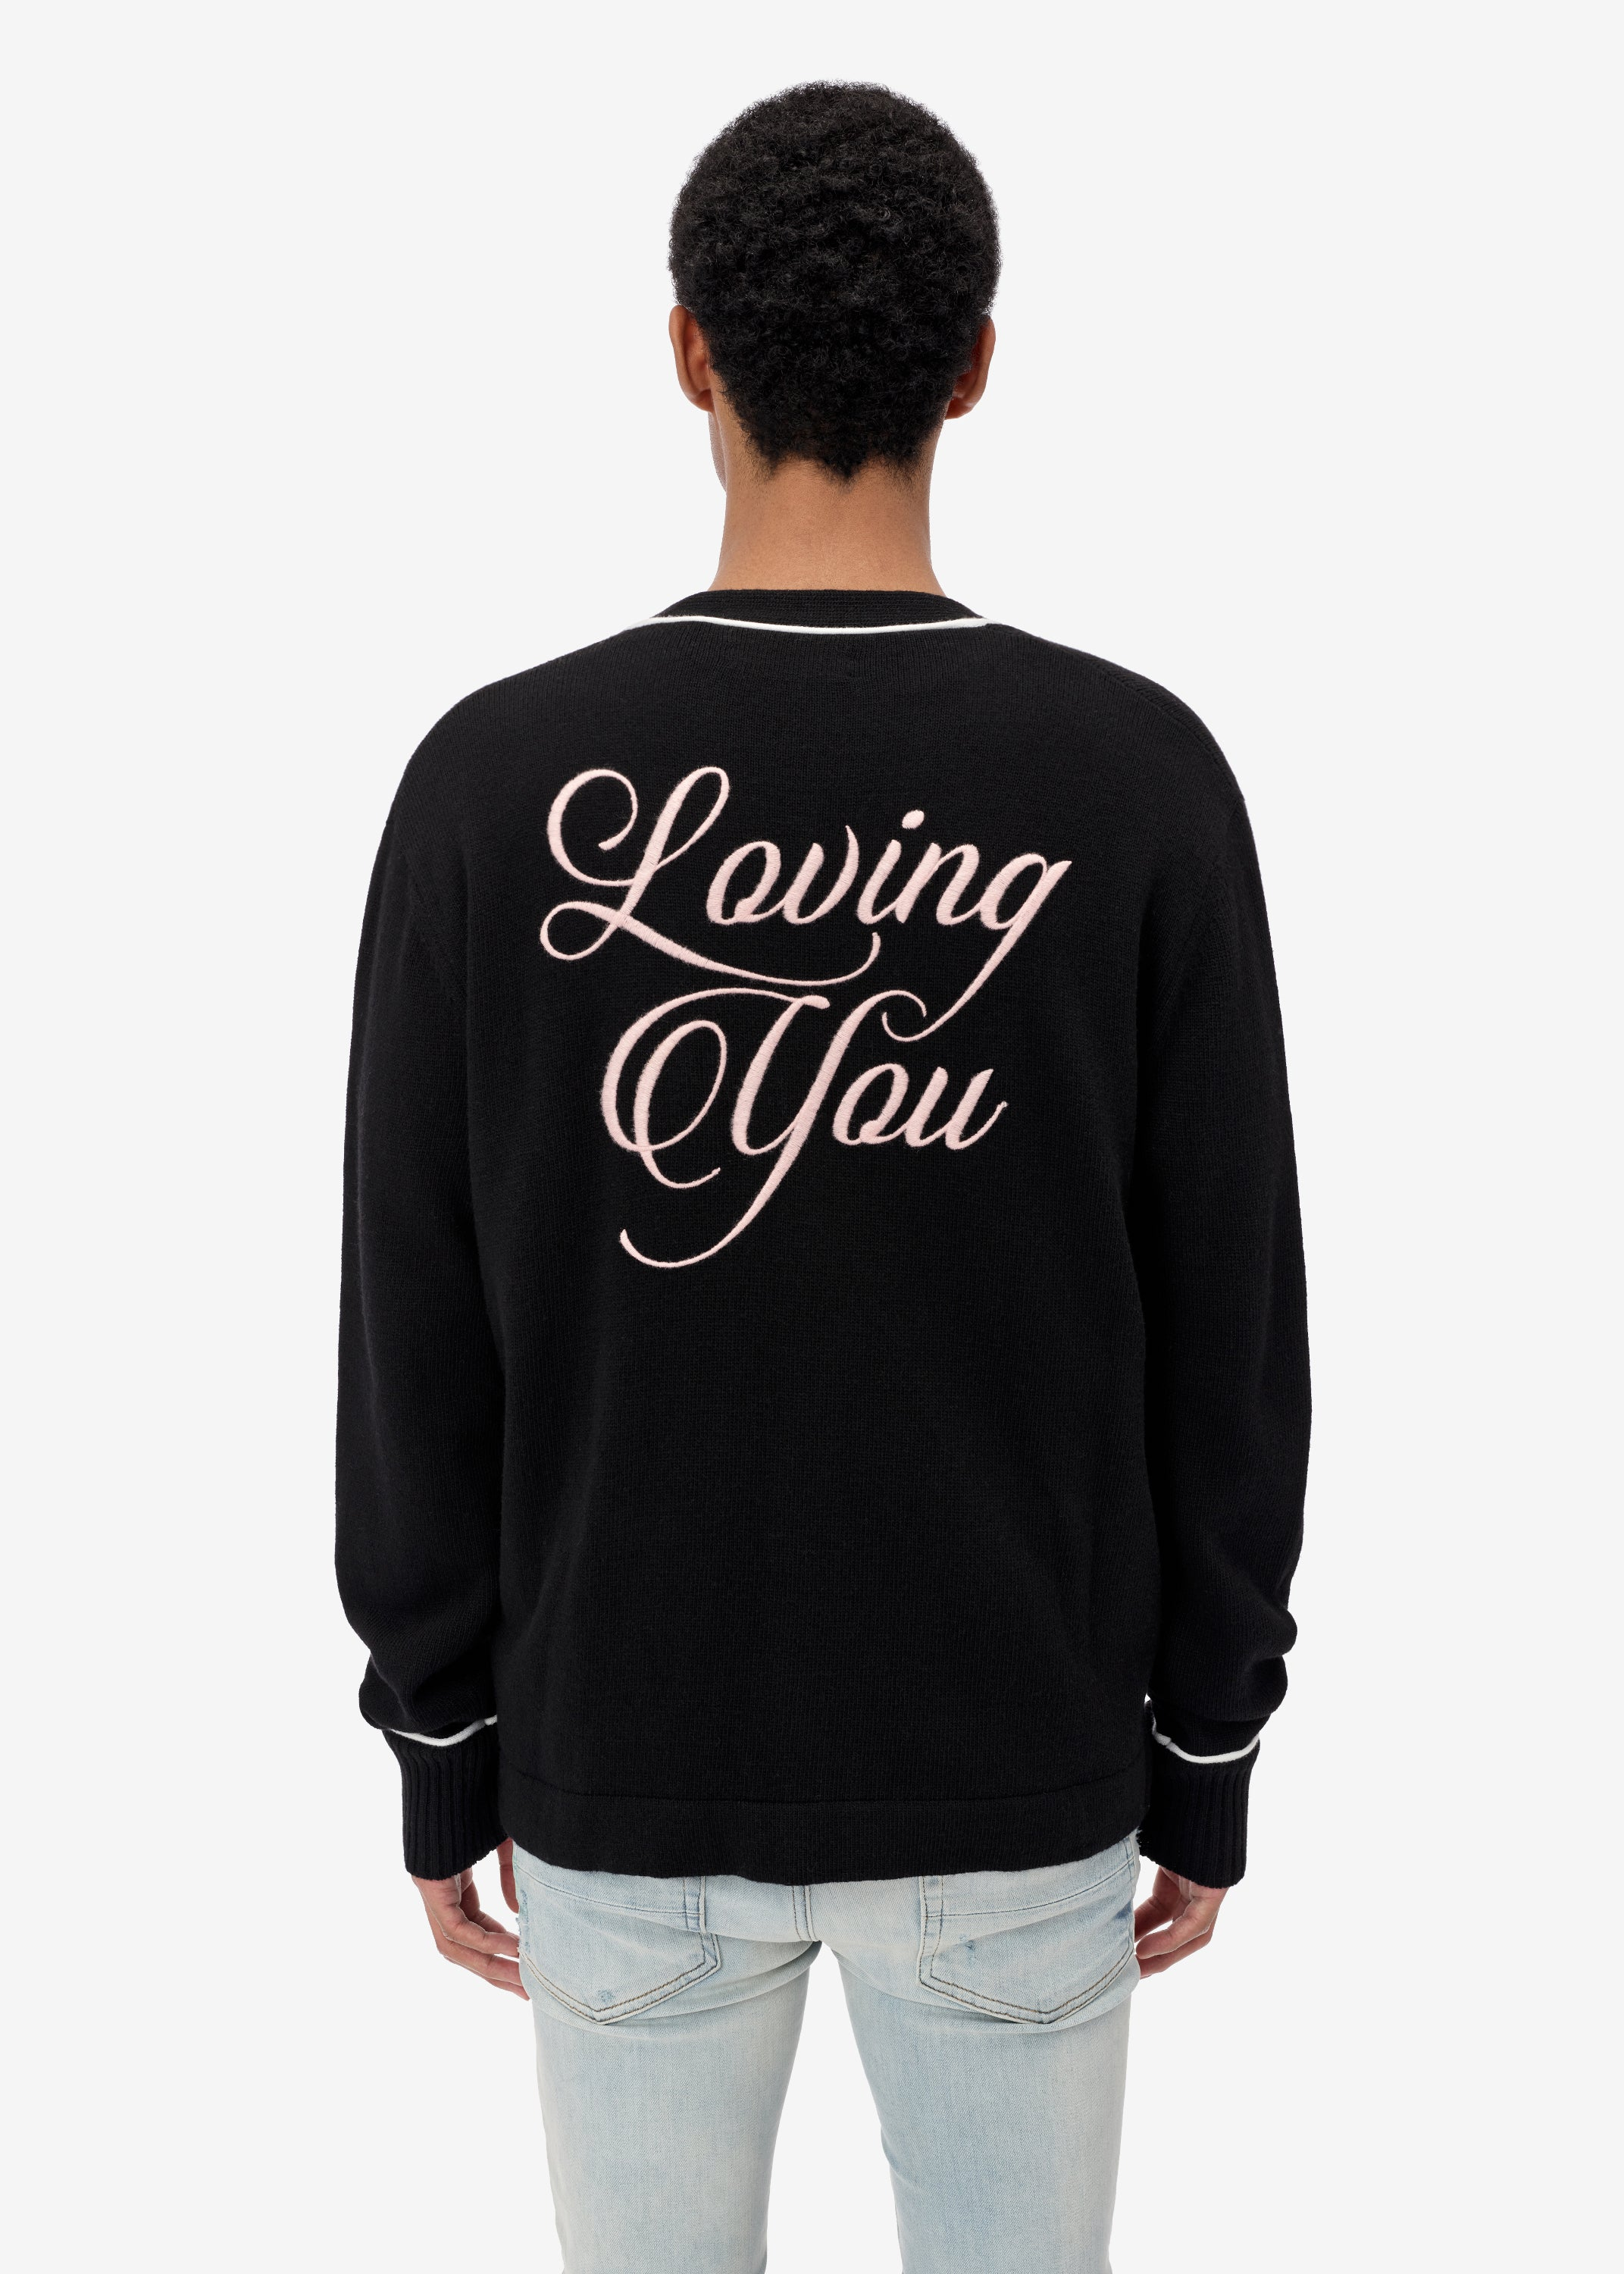 loving-you-cardigan-black-image-3